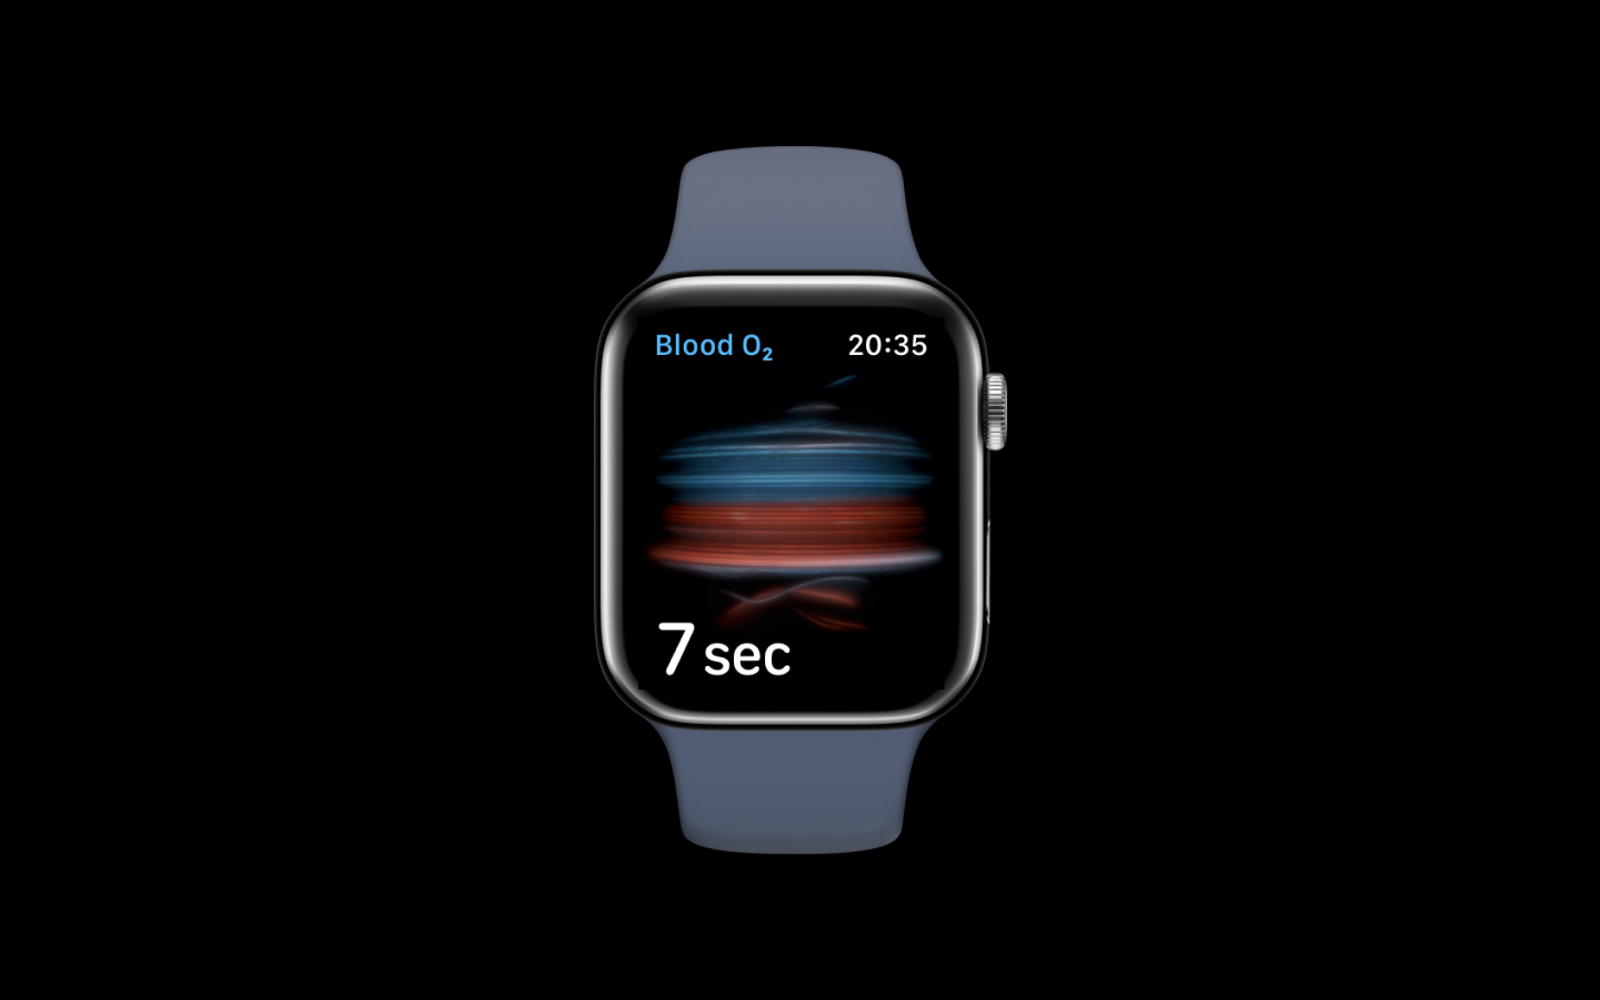 blood oxygen on iphone, blue and red lines animated in the middle, time left written under